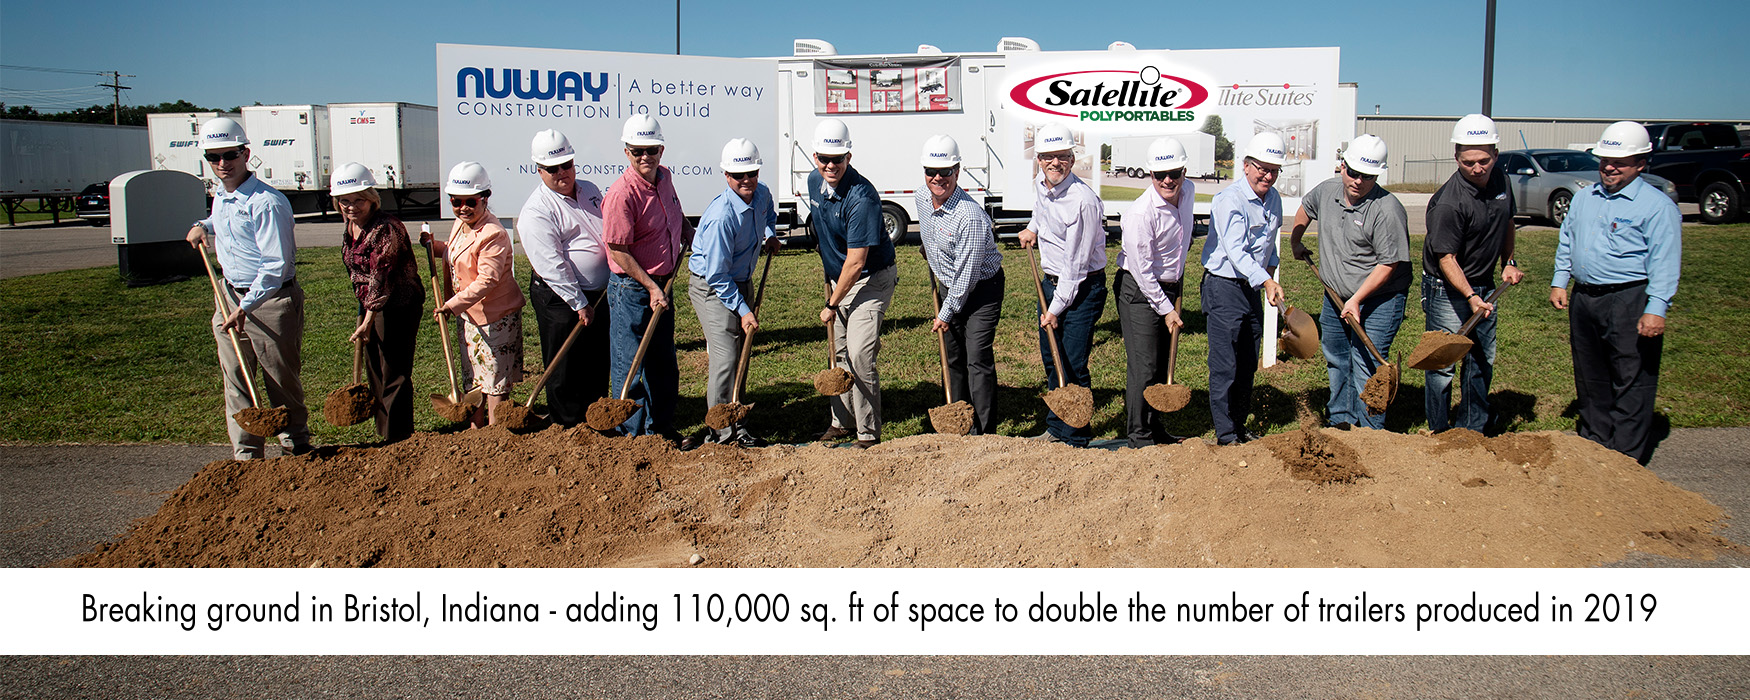 Trailer Production Ground Breaking